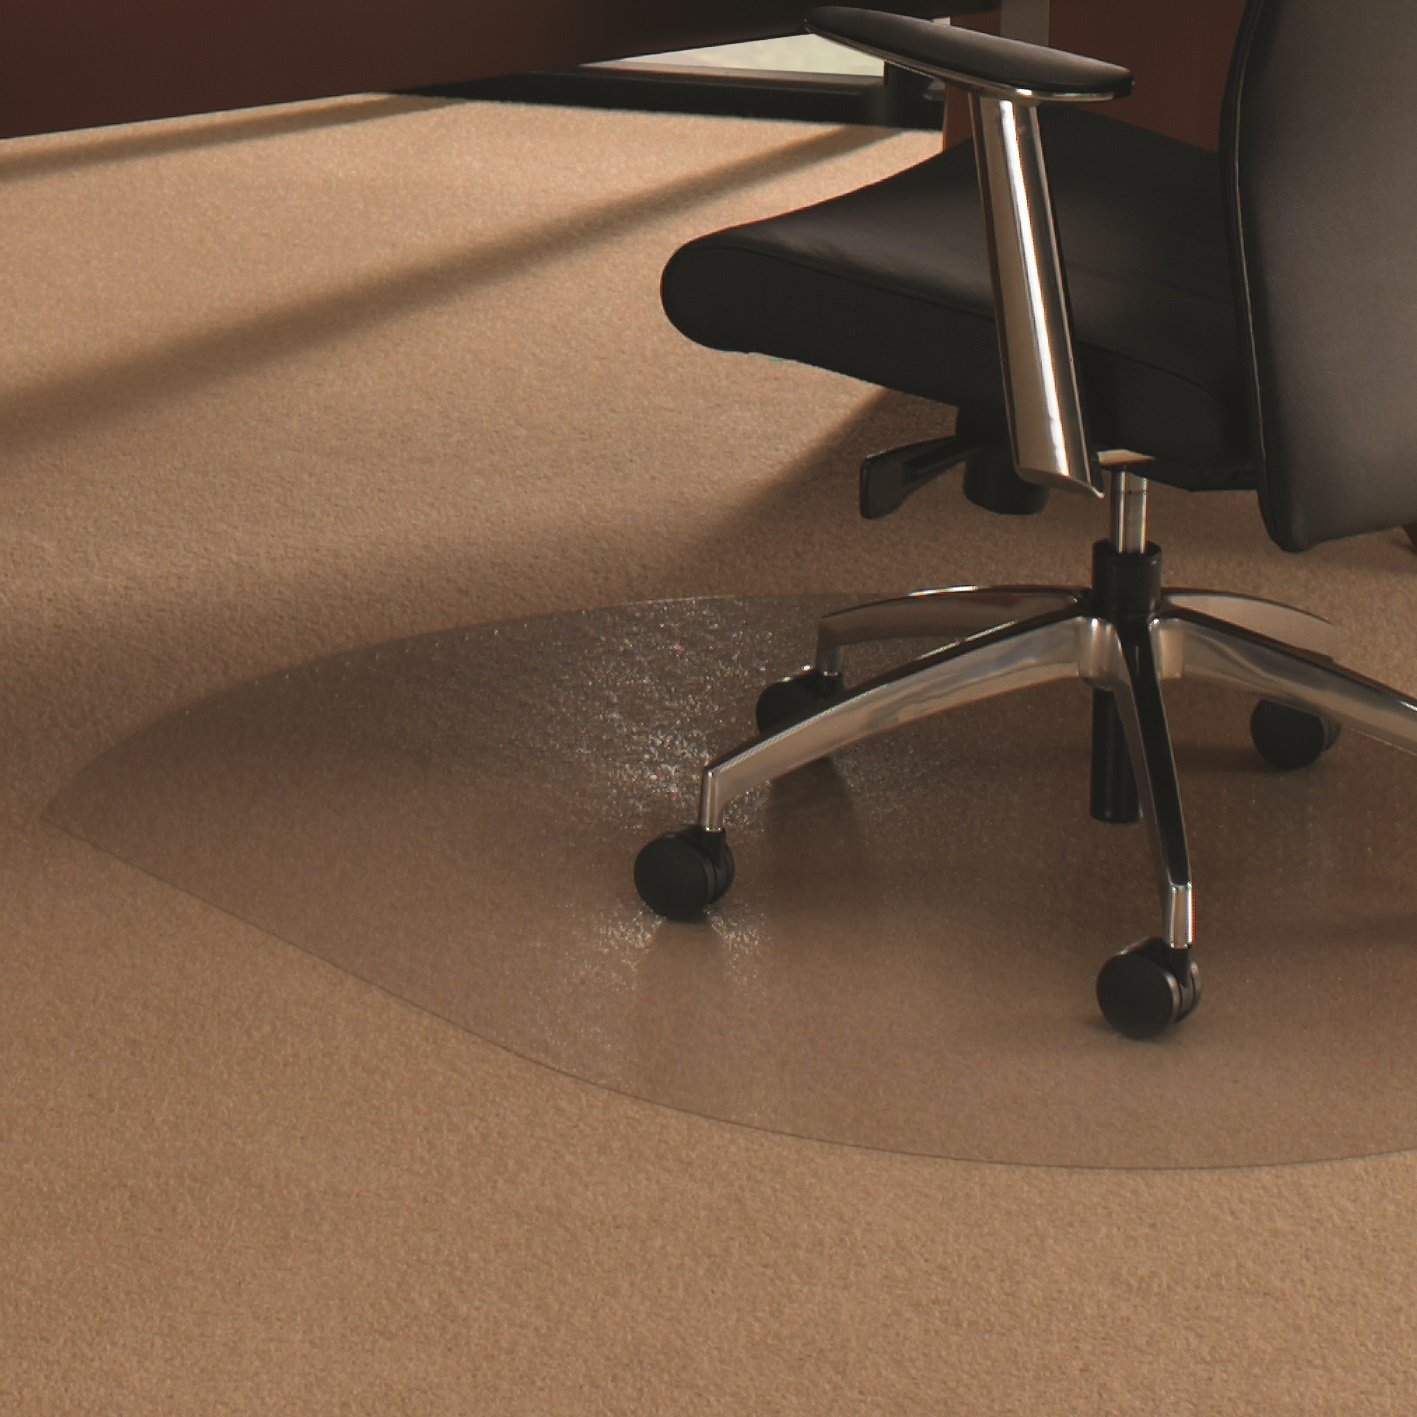 "Floortex Cleartex UltiMat Polycarbonate Chair Mat for Low/Medium Pile Carpets up to 1/2"" Thick, 49"" x 39"", Contoured, Clear (AFCRCM35048)"